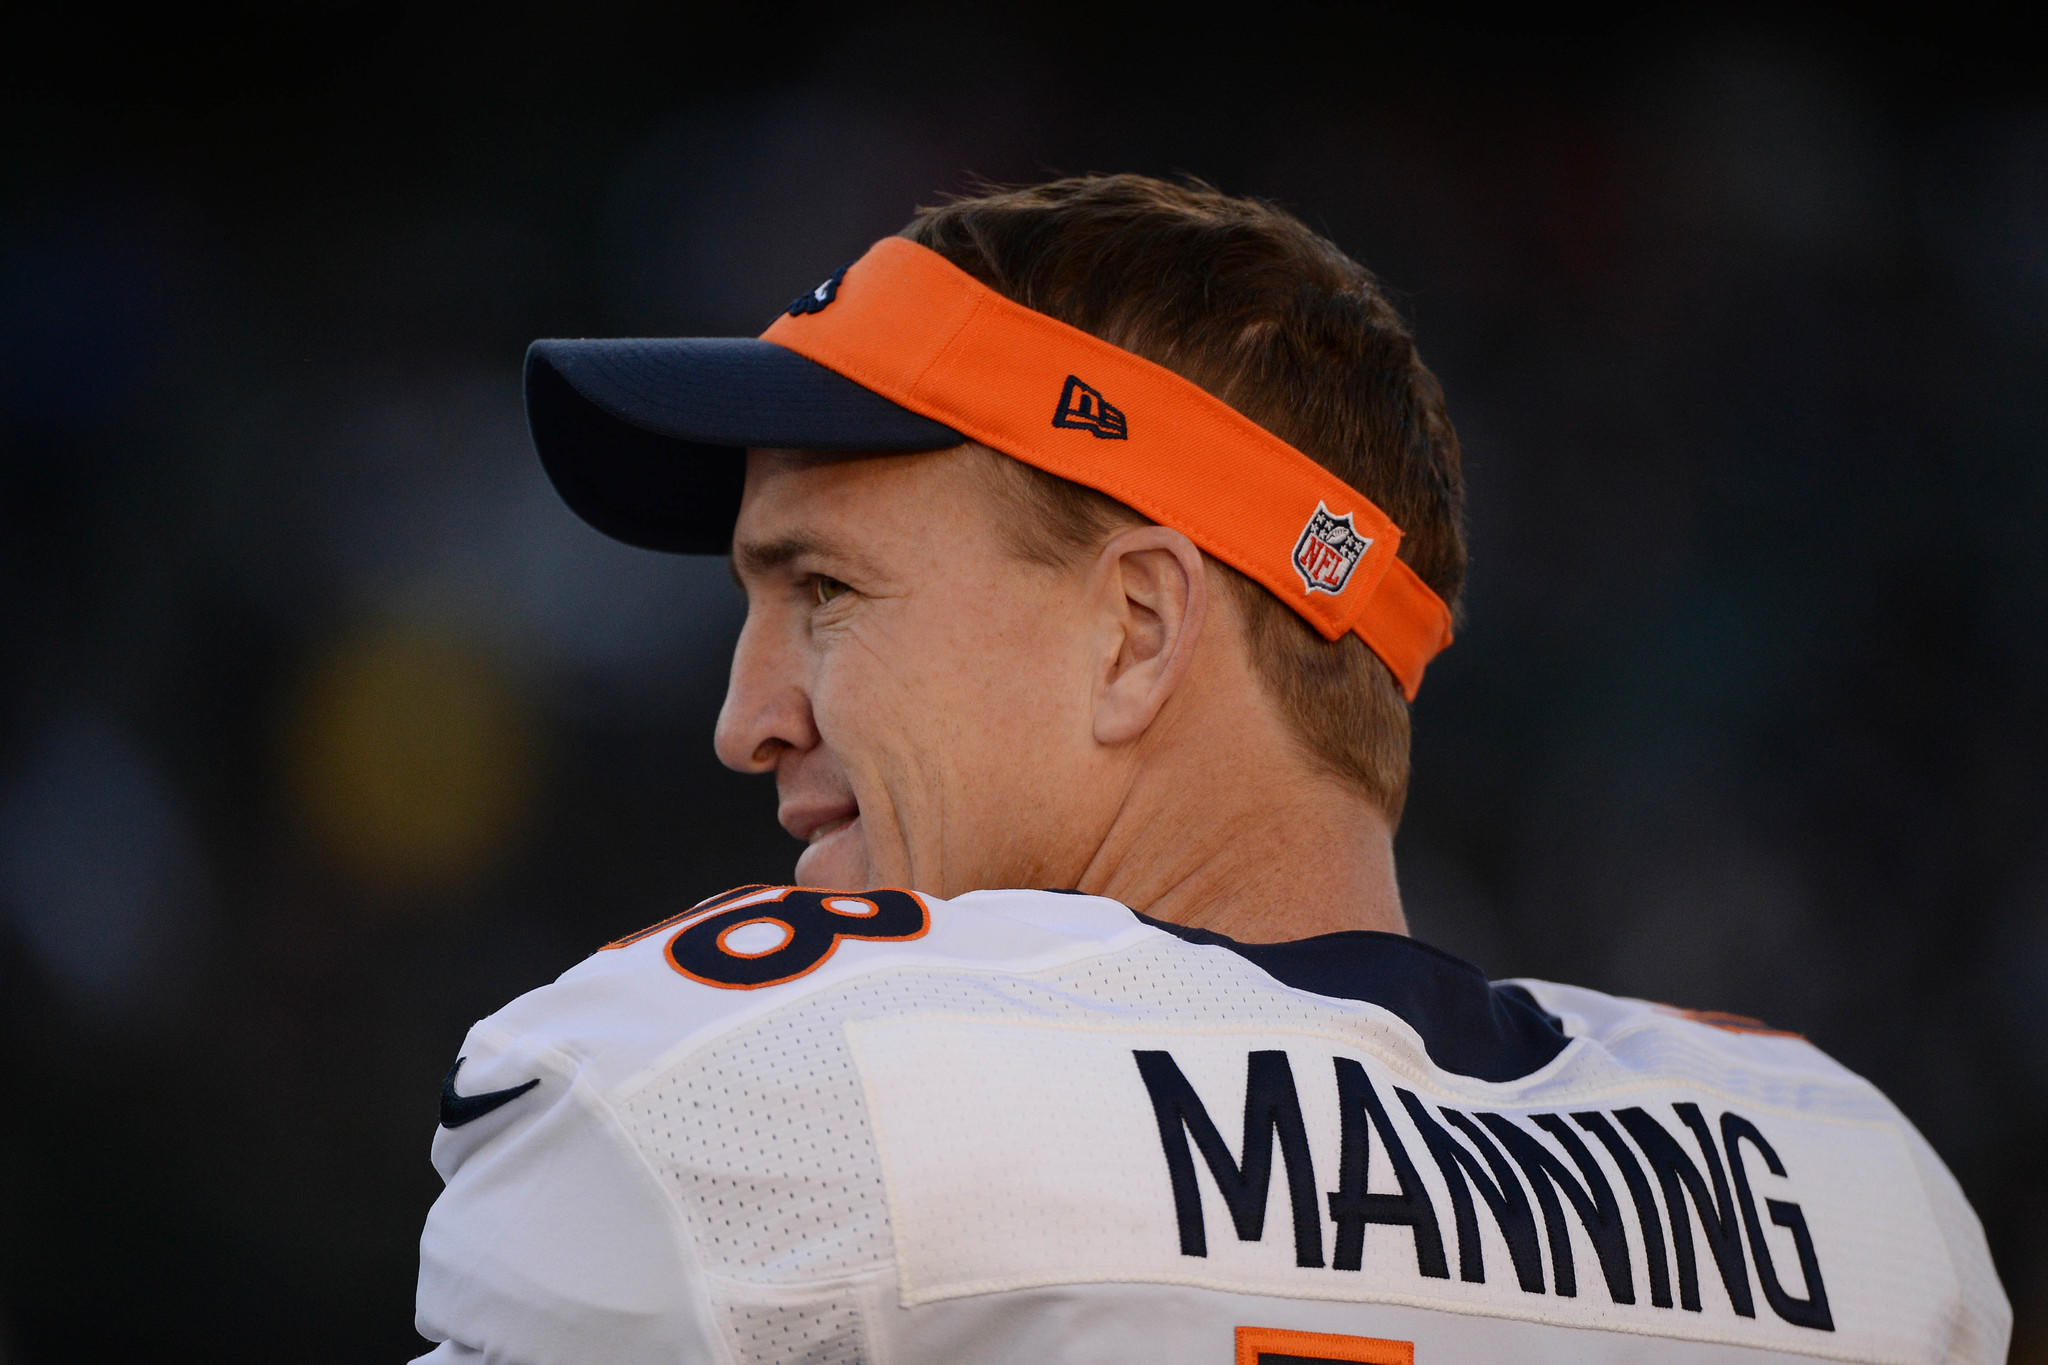 Denver Broncos quarterback Peyton Manning will lead his team against the San Diego Chargers on Sunday.